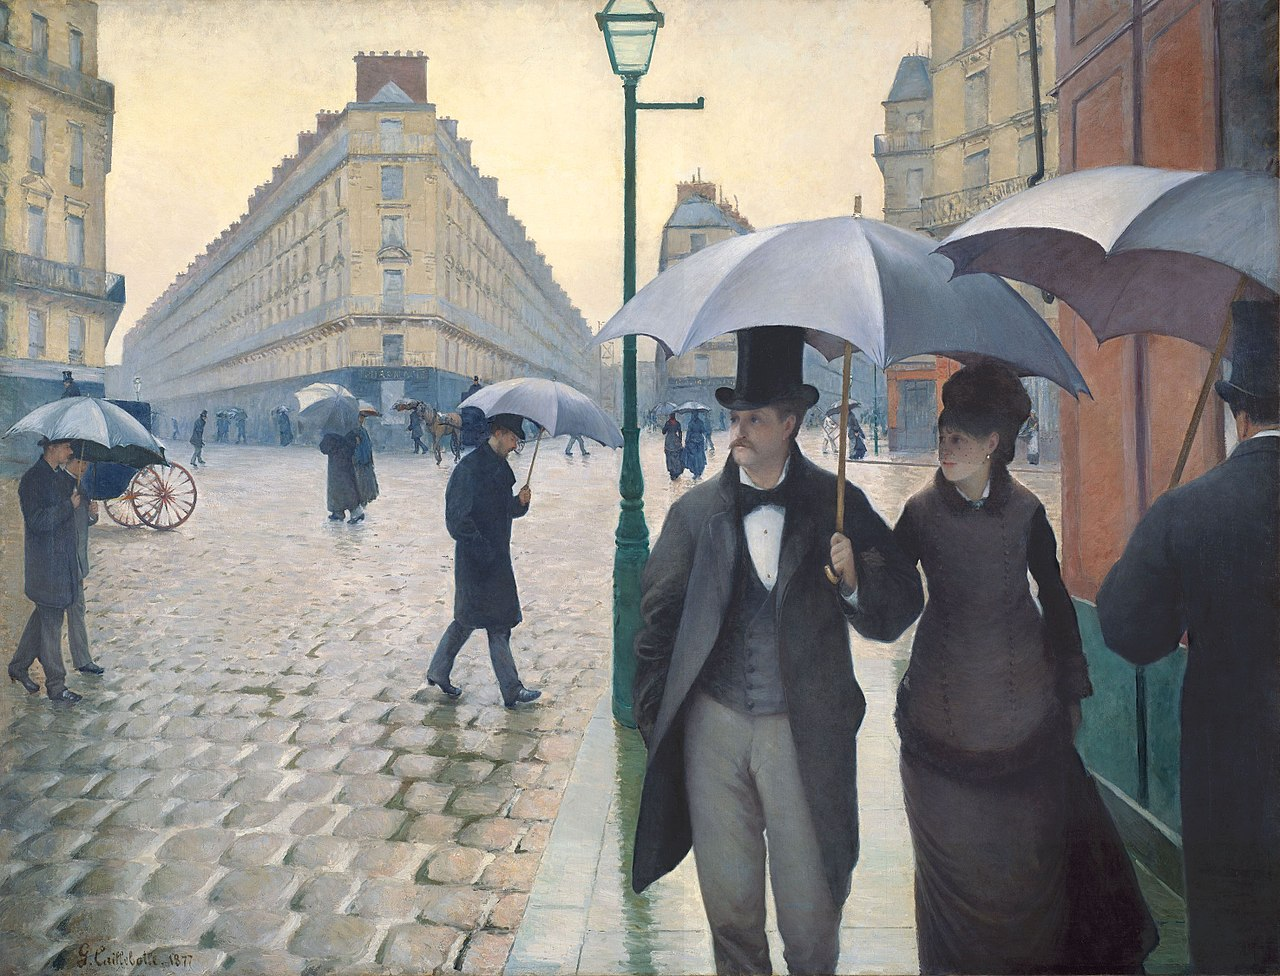 http://upload.wikimedia.org/wikipedia/commons/thumb/d/d4/Gustave_Caillebotte_-_Jour_de_pluie_%C3%A0_Paris.jpg/1280px-Gustave_Caillebotte_-_Jour_de_pluie_%C3%A0_Paris.jpg